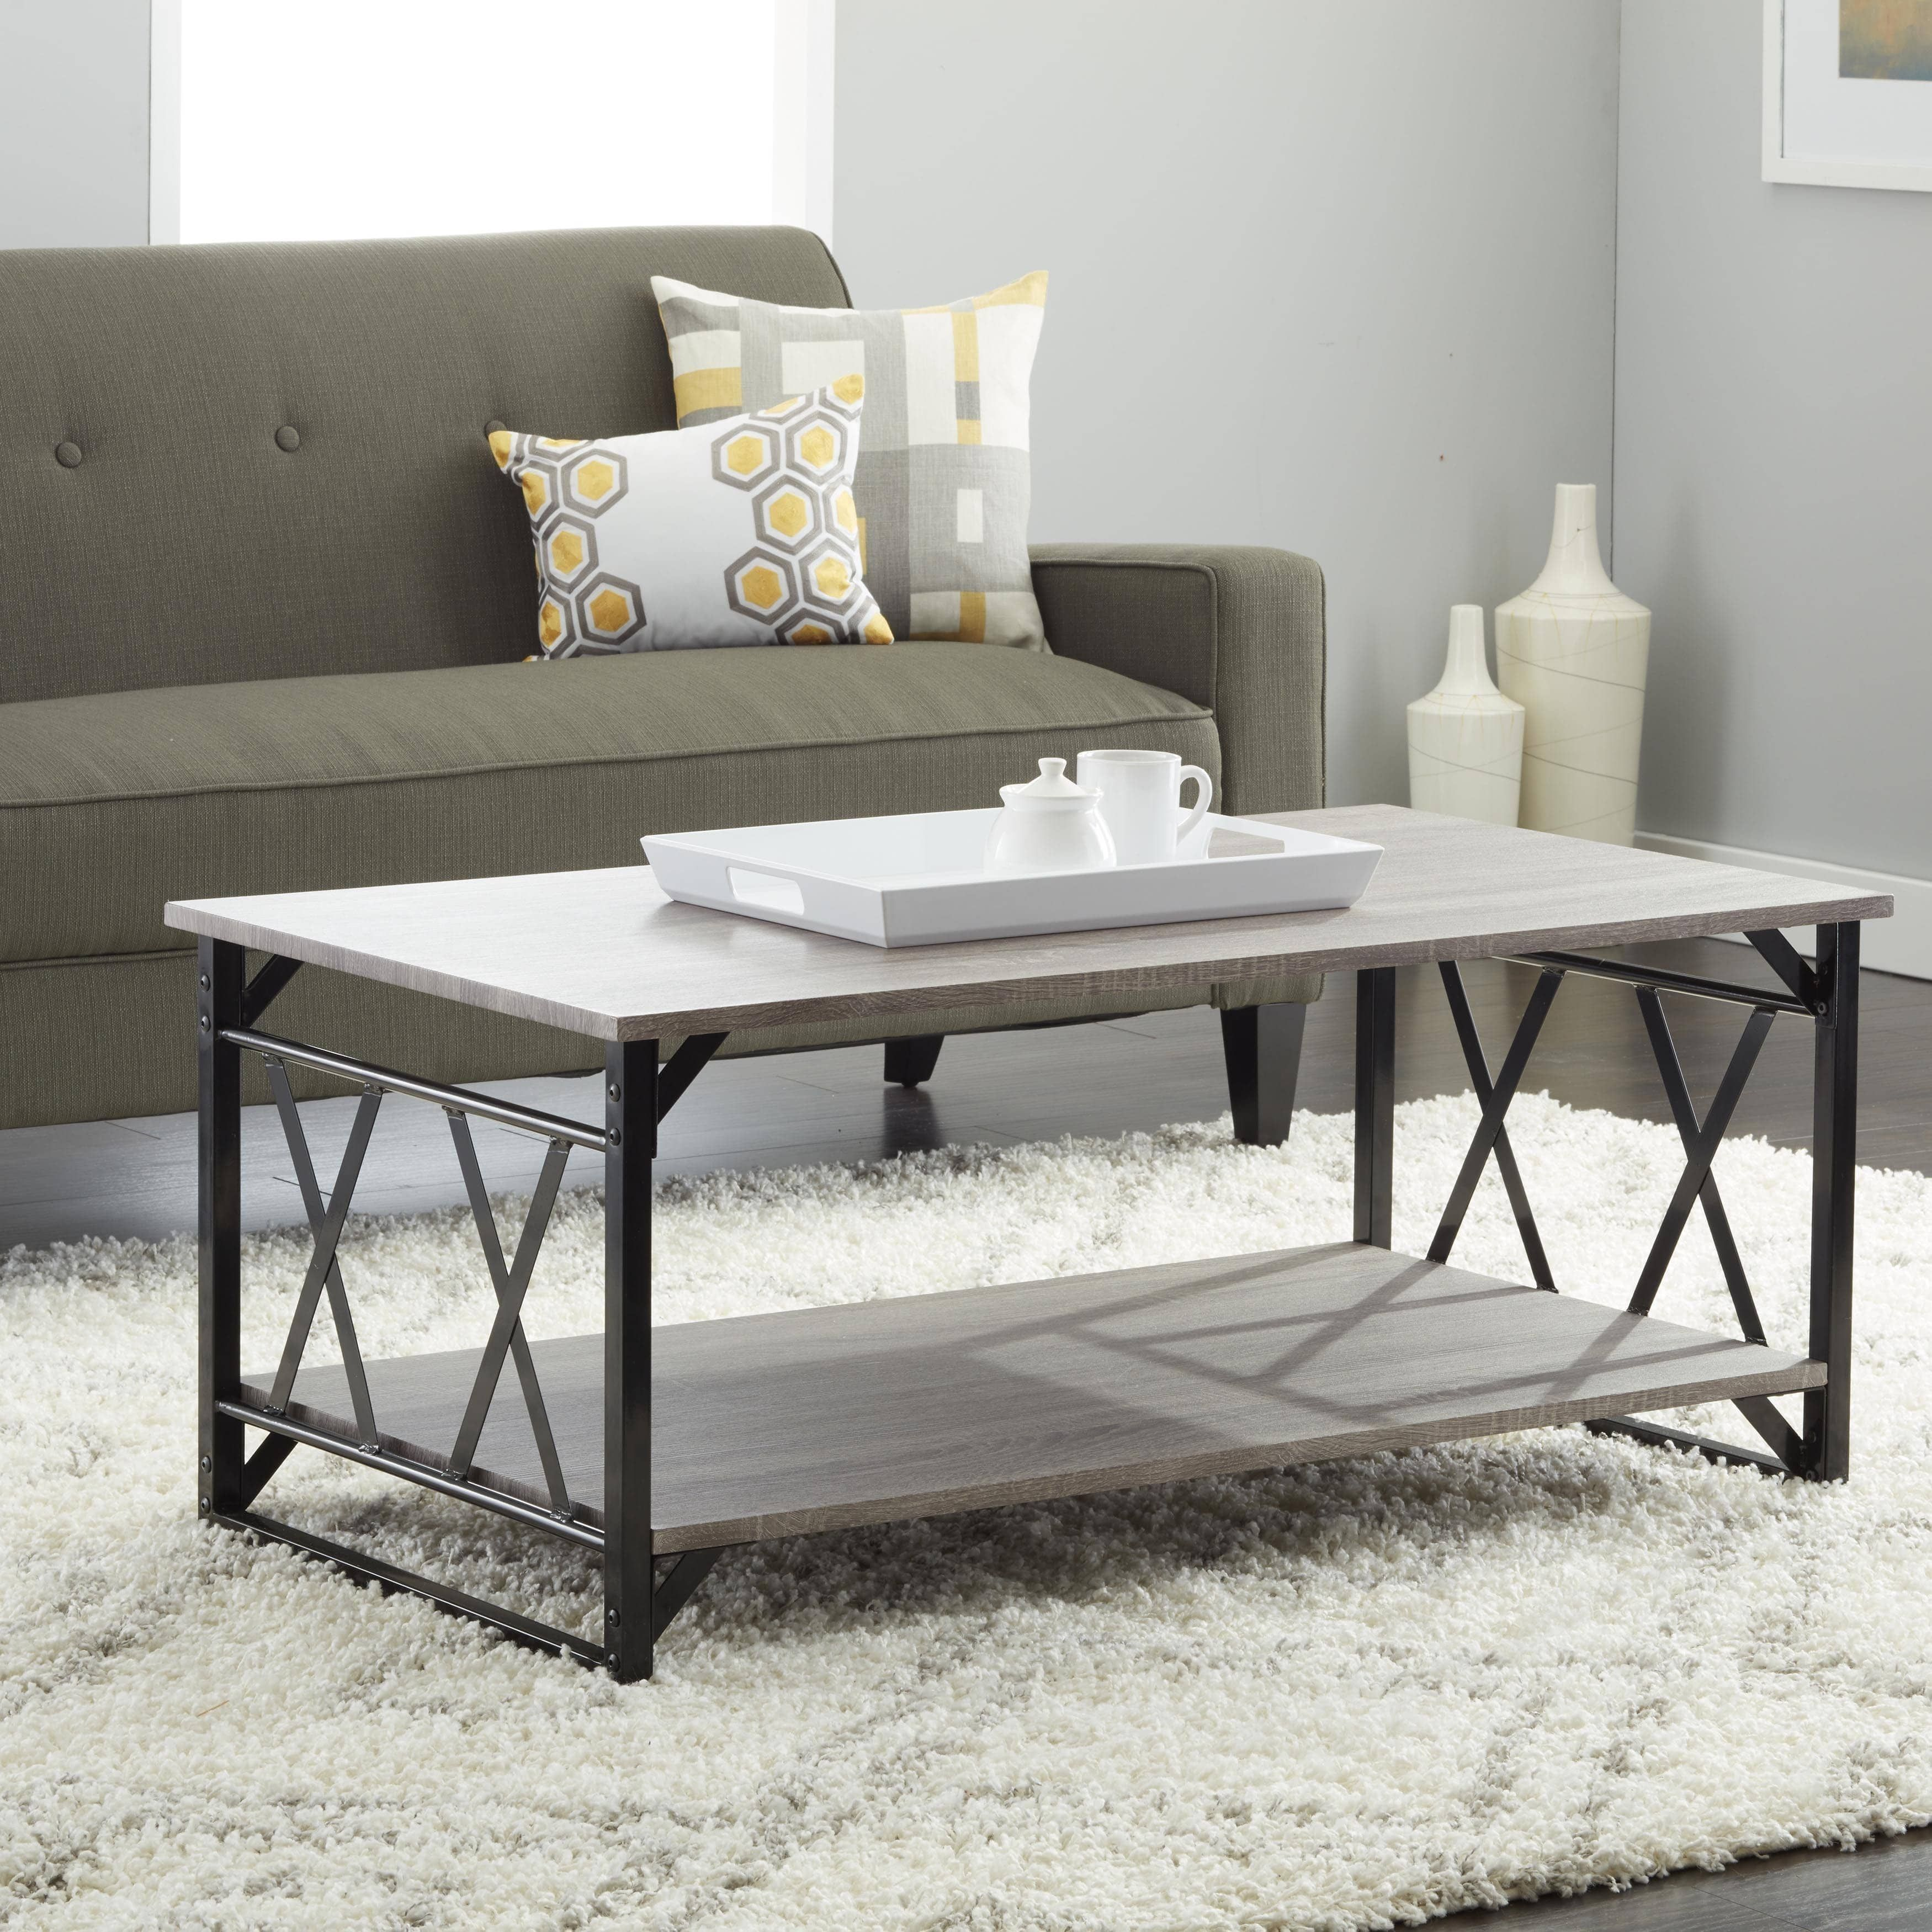 Best Living Room Furniture Deals: Reclaimed Style Grey Coffee Table With Double 'X' Frame